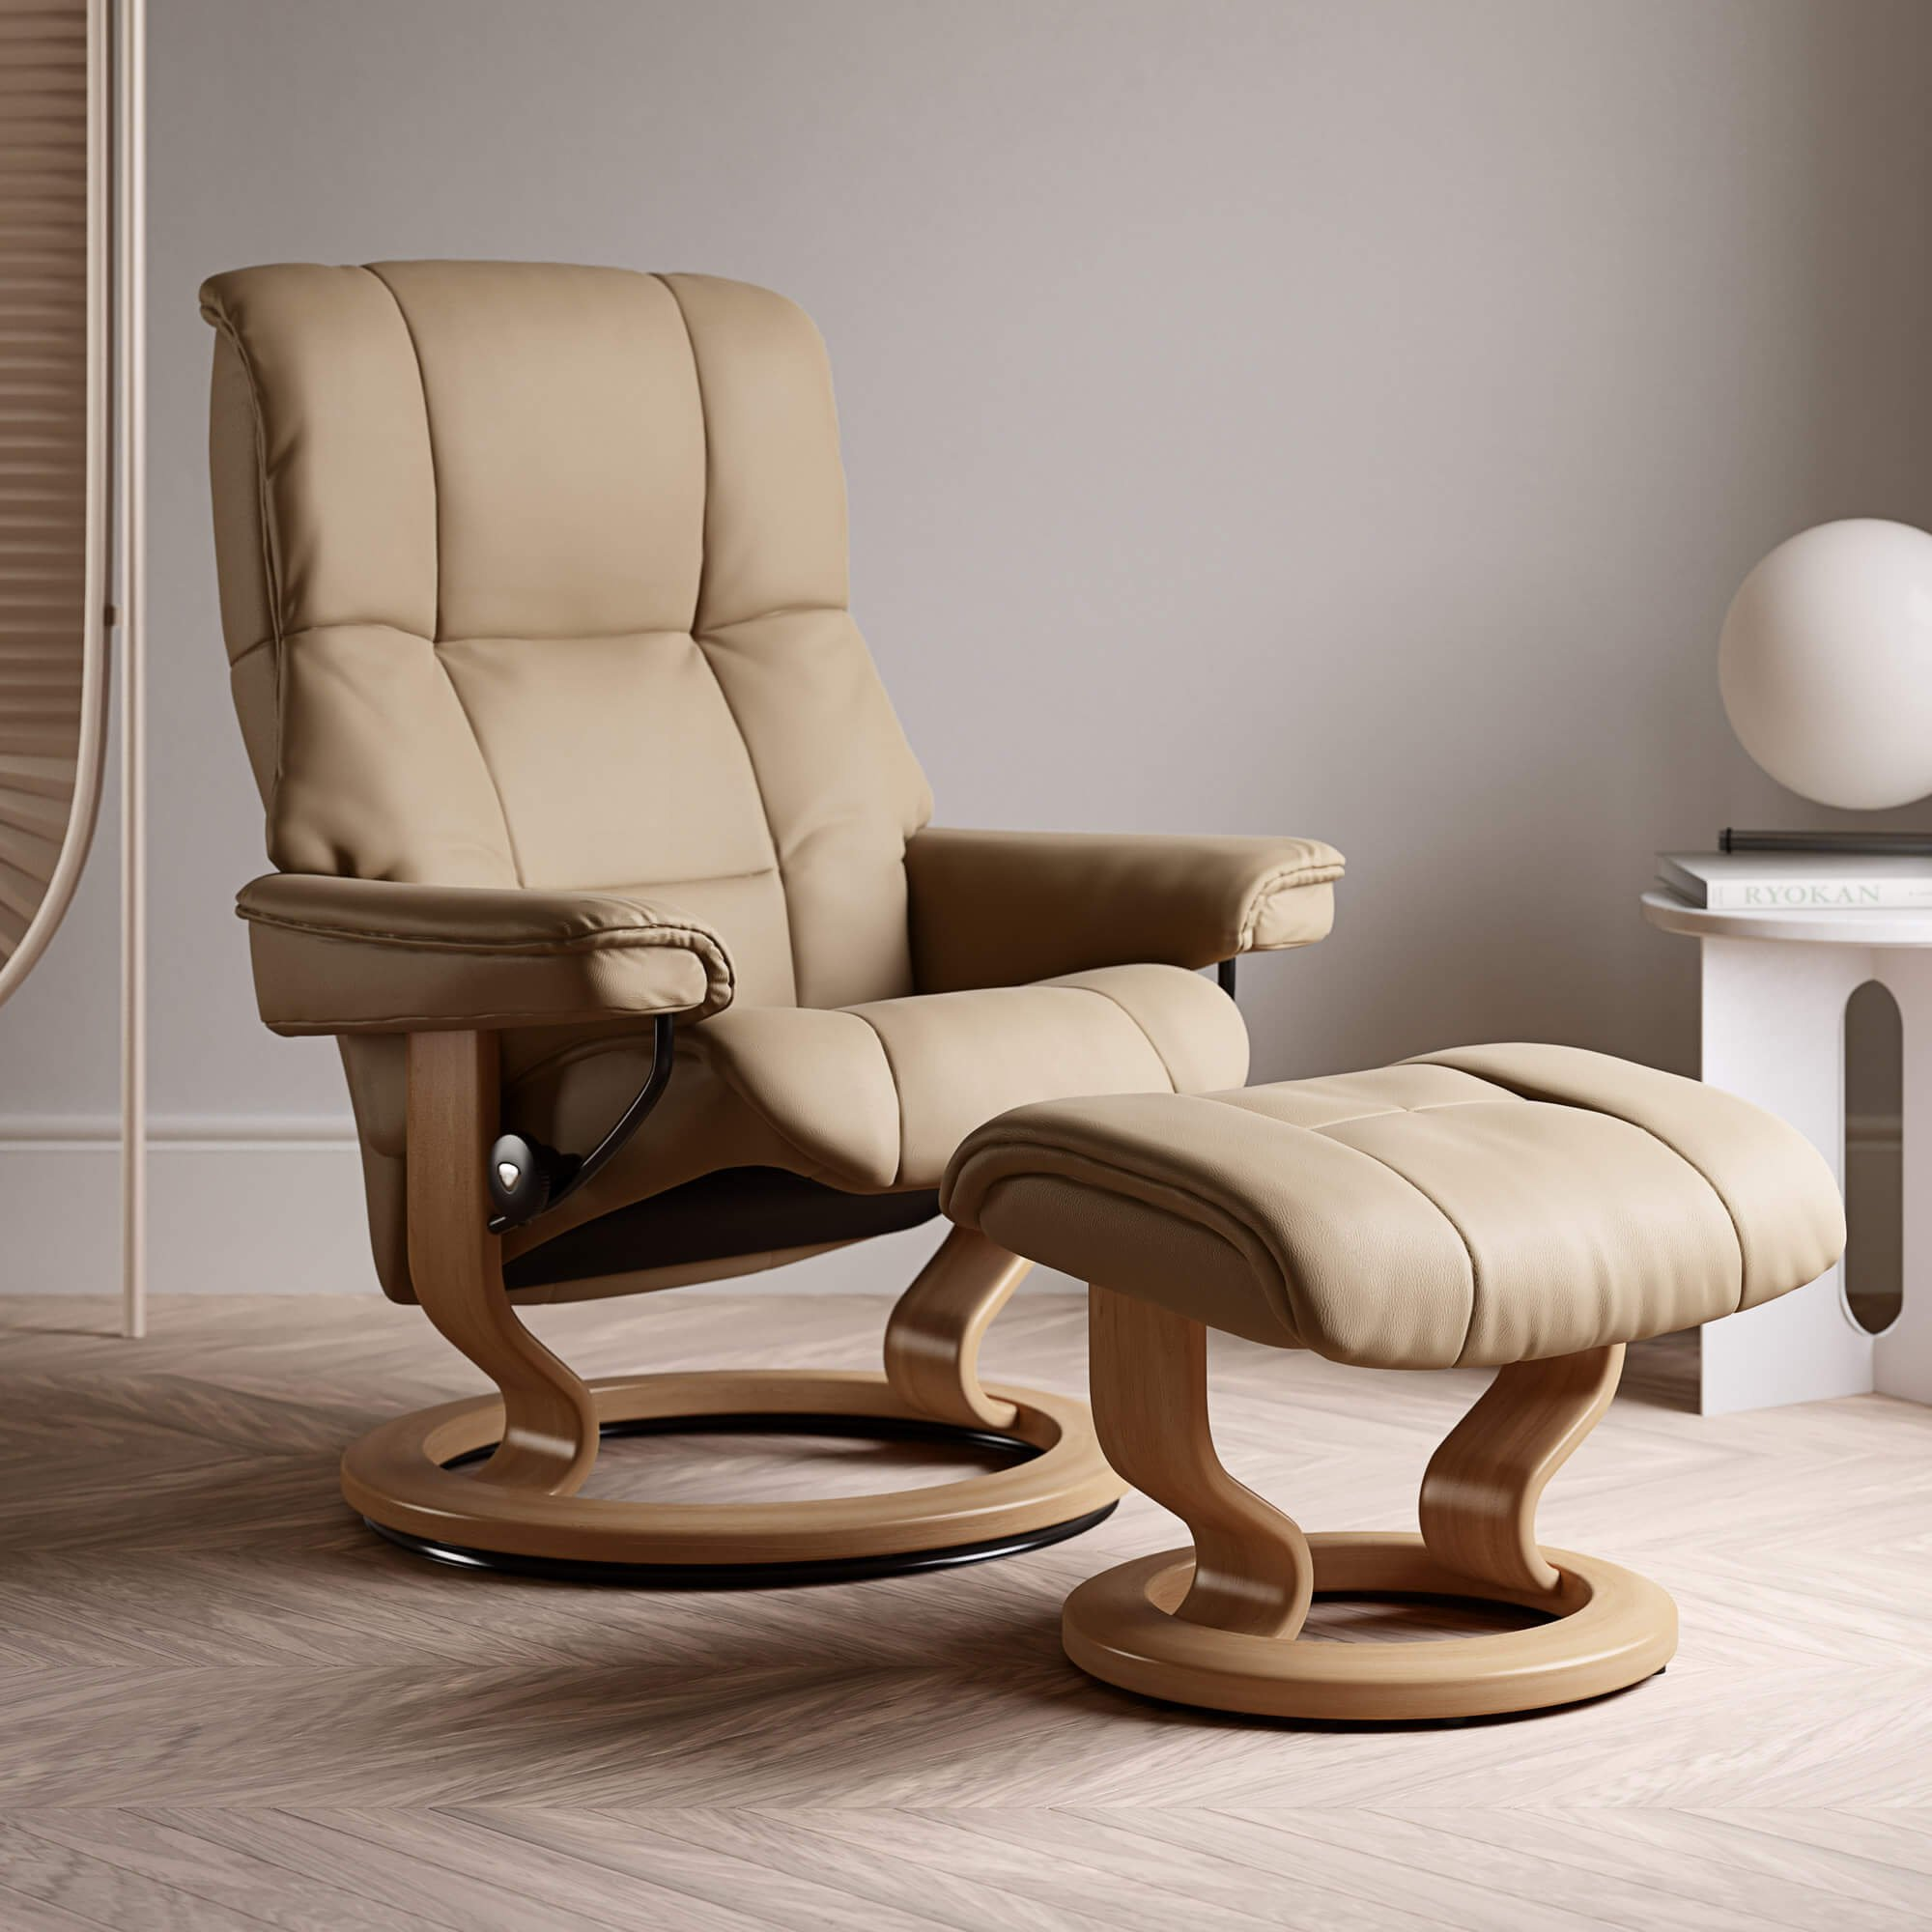 Stressless Mayfair Medium Recliner Chair & Stool With Classic Base in Paloma Sand & Oak